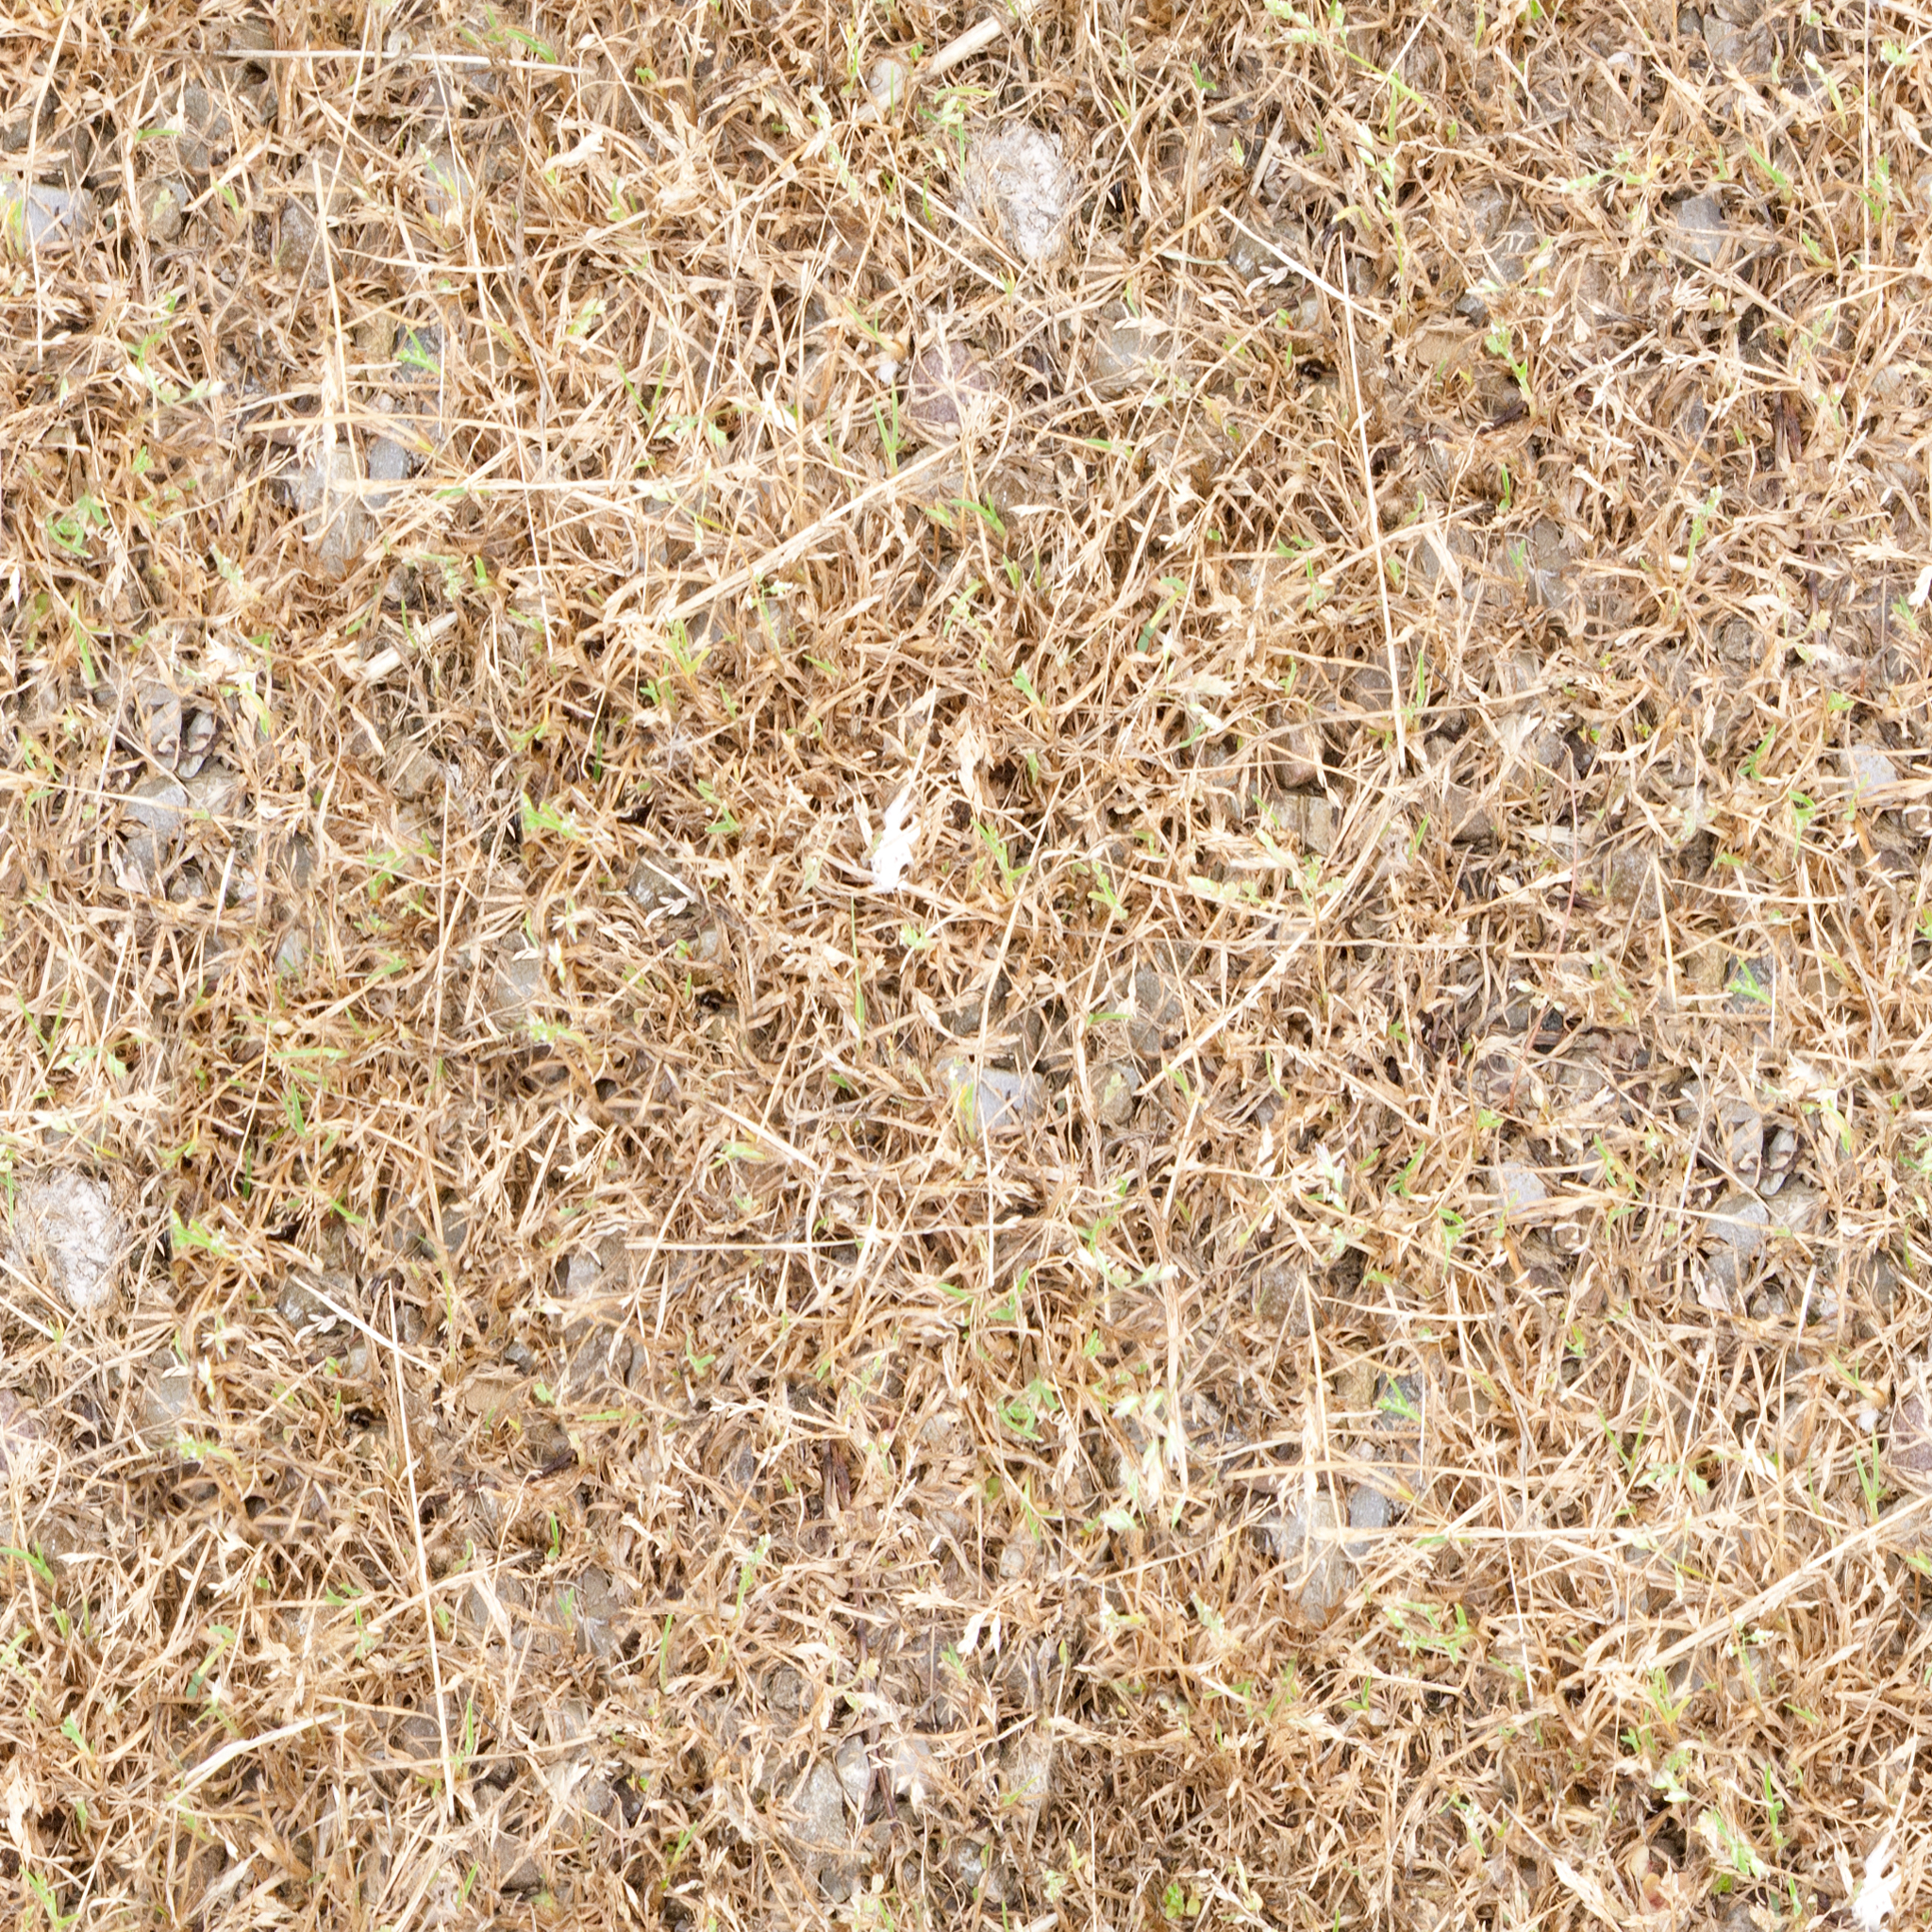 dried-field.jpg